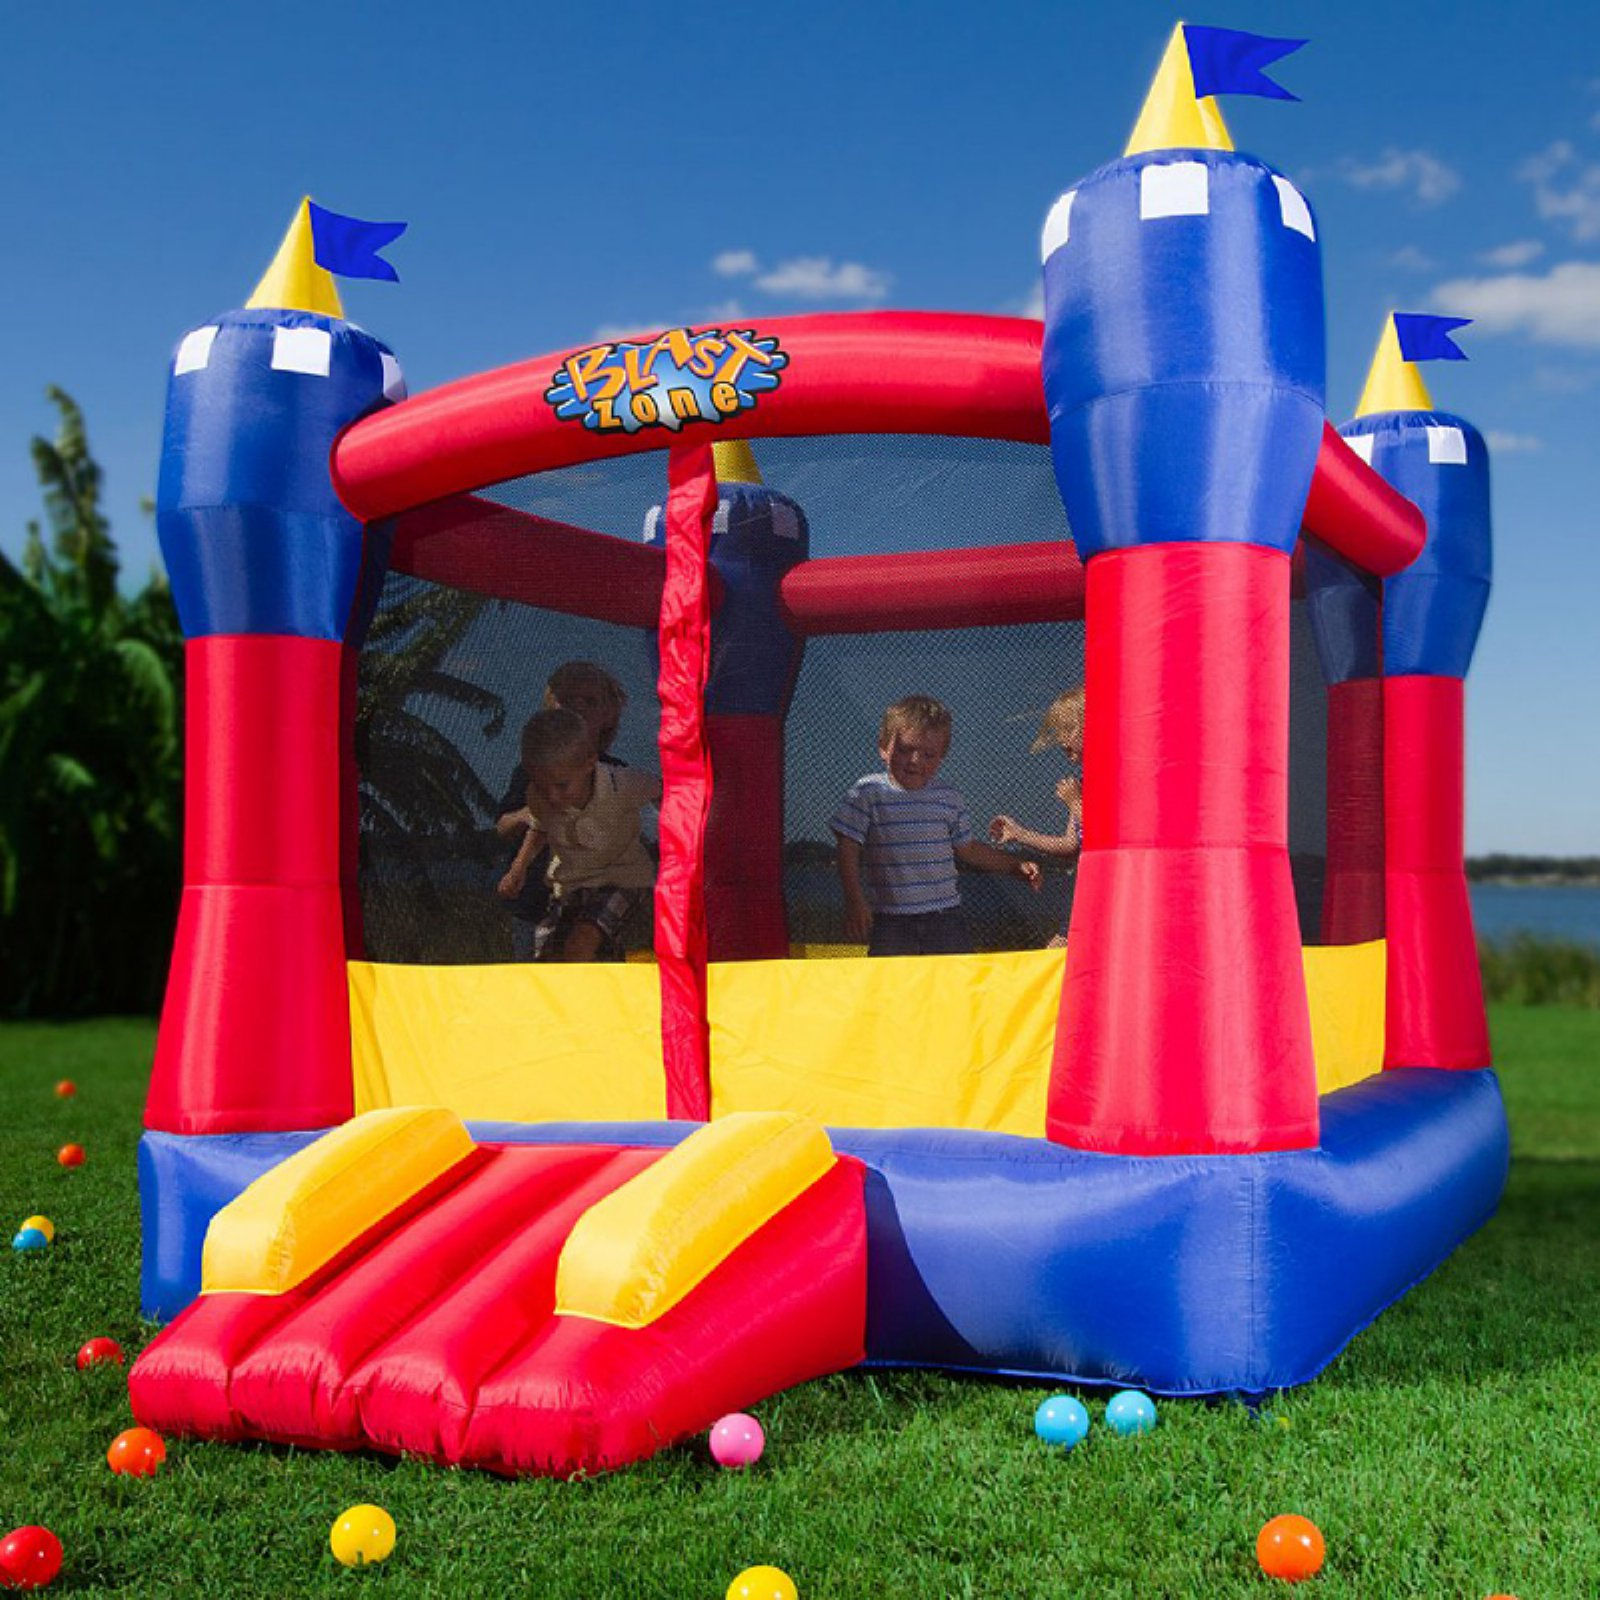 Blast Zone Magic Castle Bounce House by Vortex International Enterprises